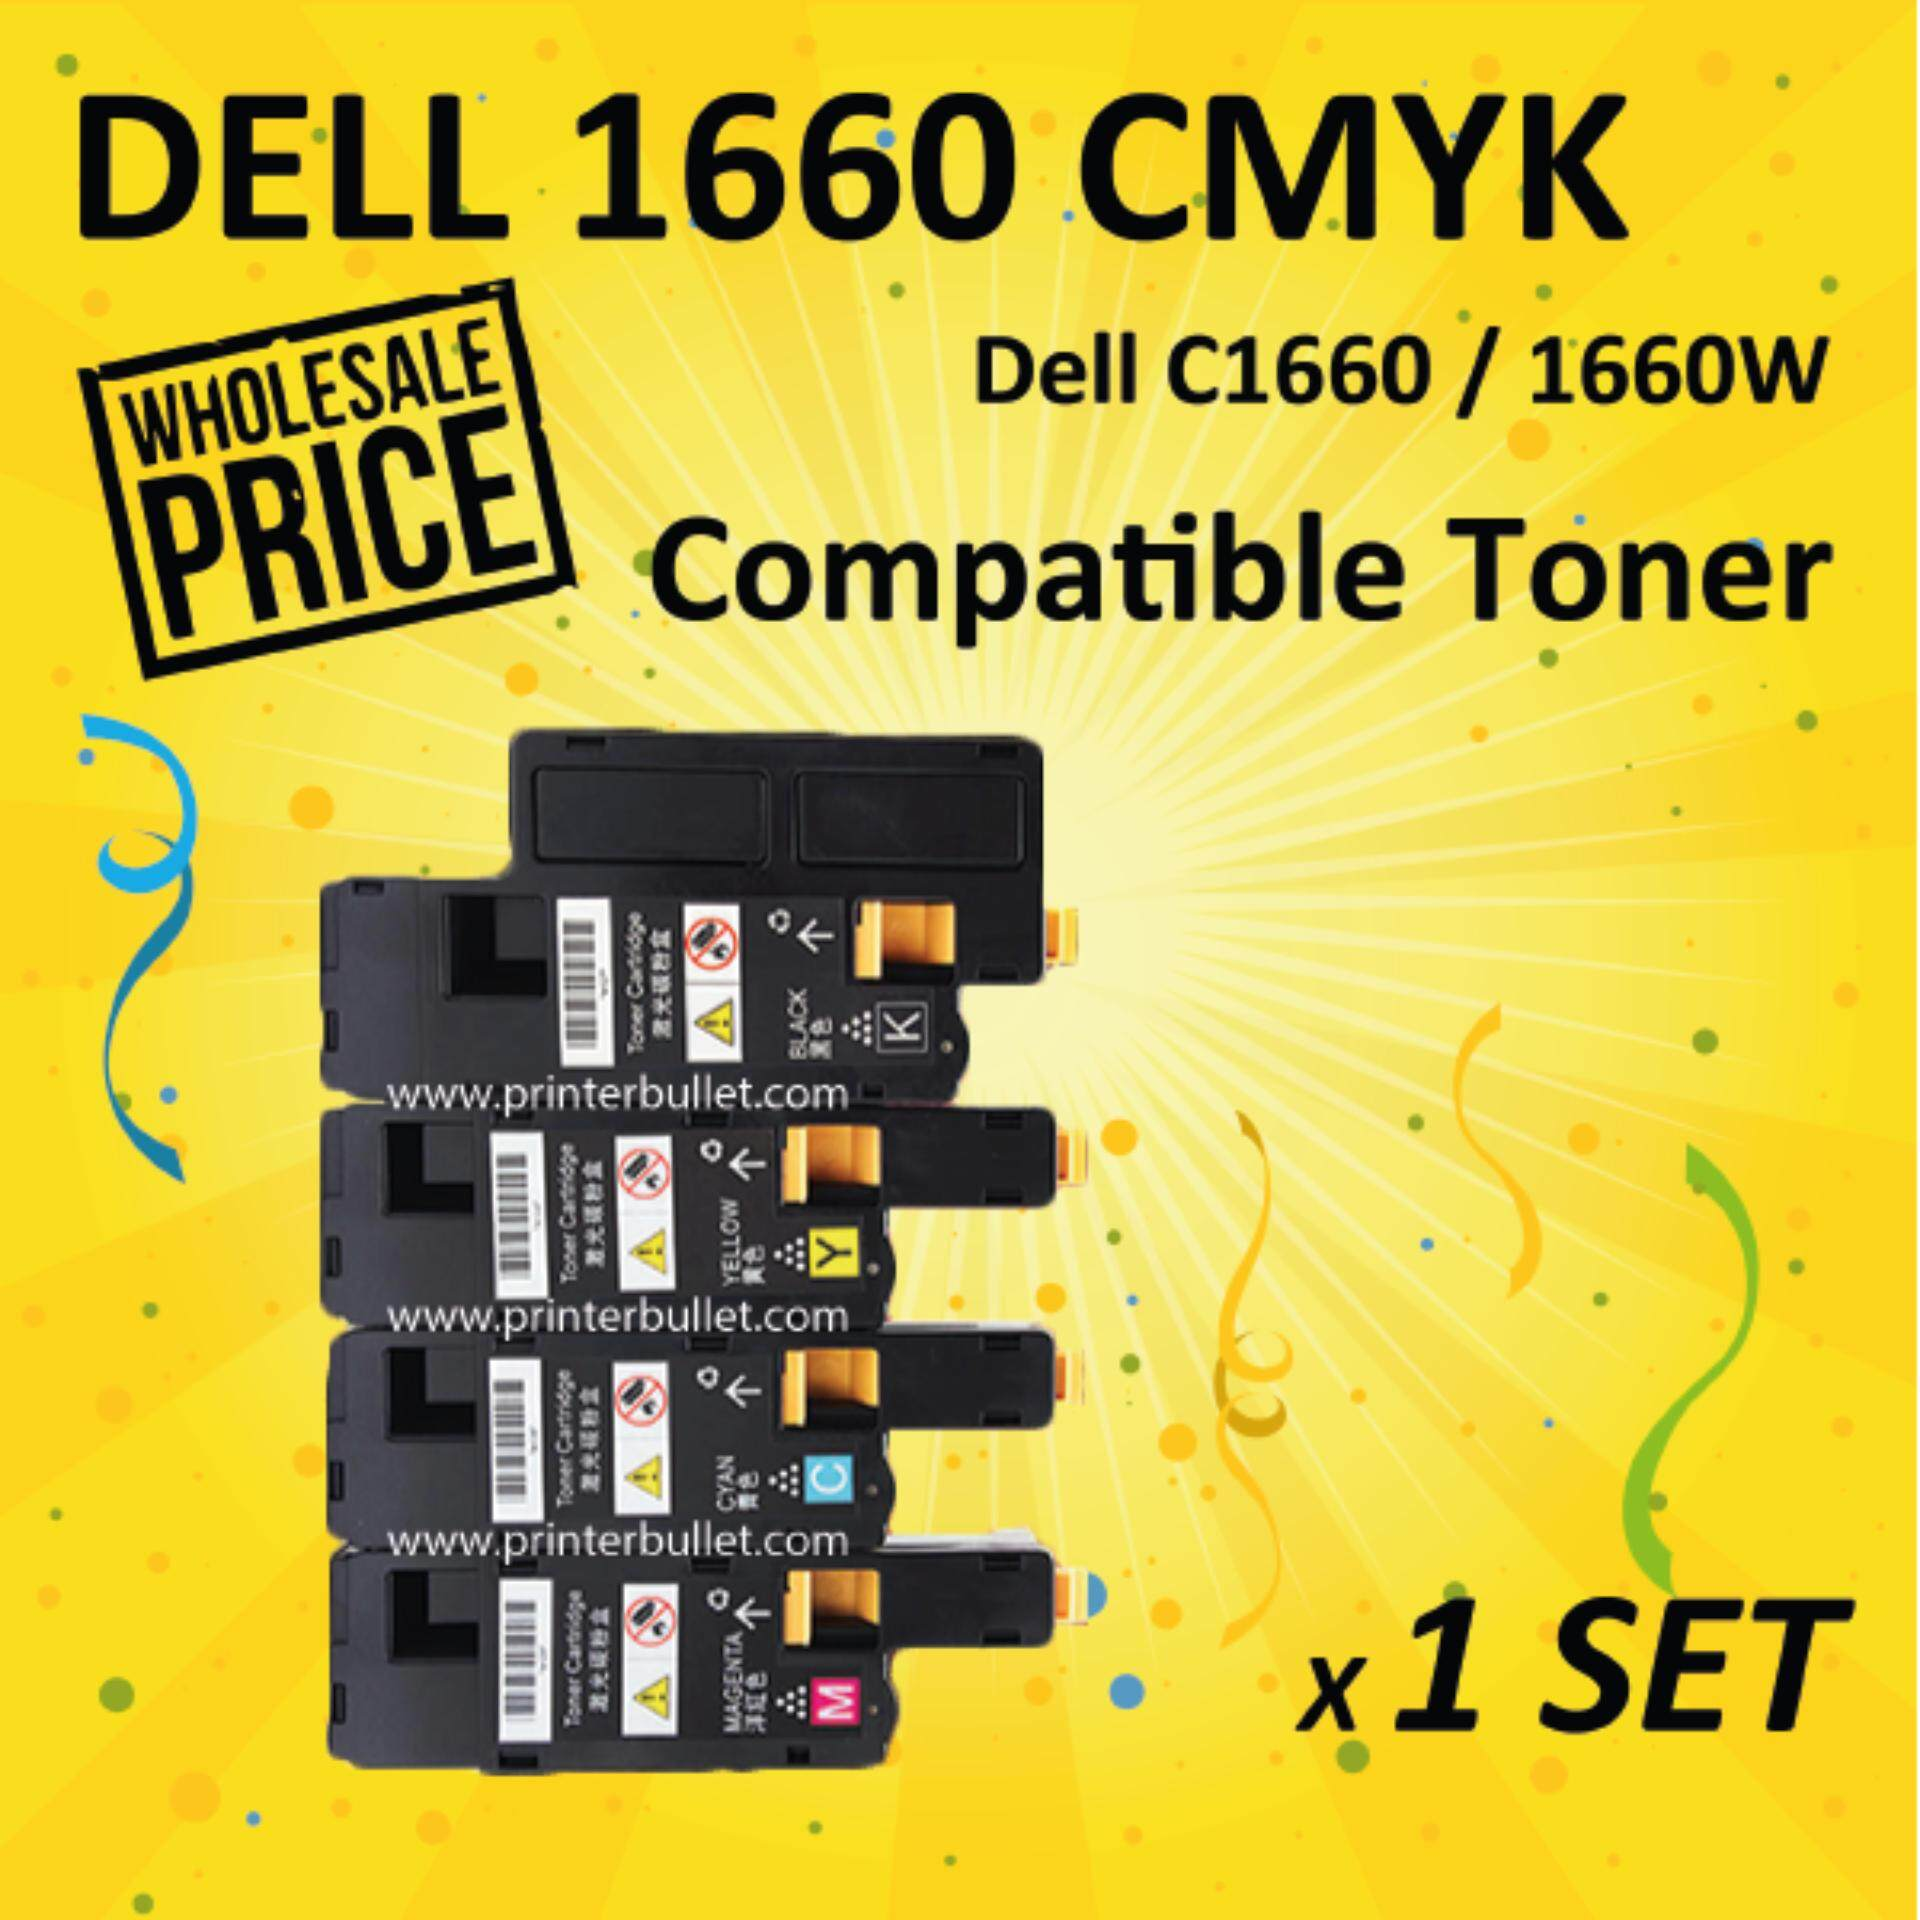 1 set CMYK DELL C1660w / C1660 Compatible Toner Colour Cartridge